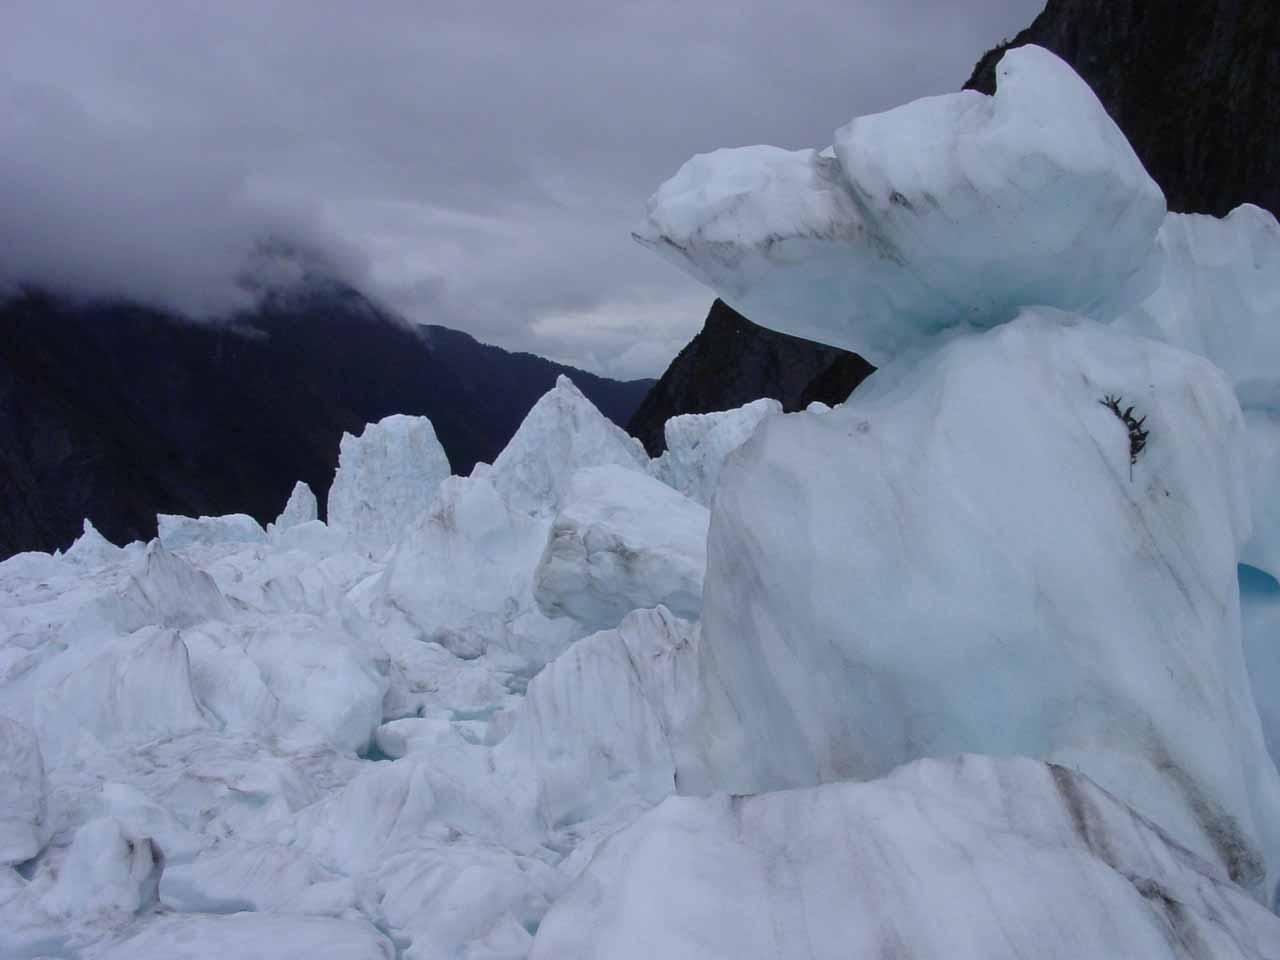 More jagged ice formations on the Franz Josef Glacier